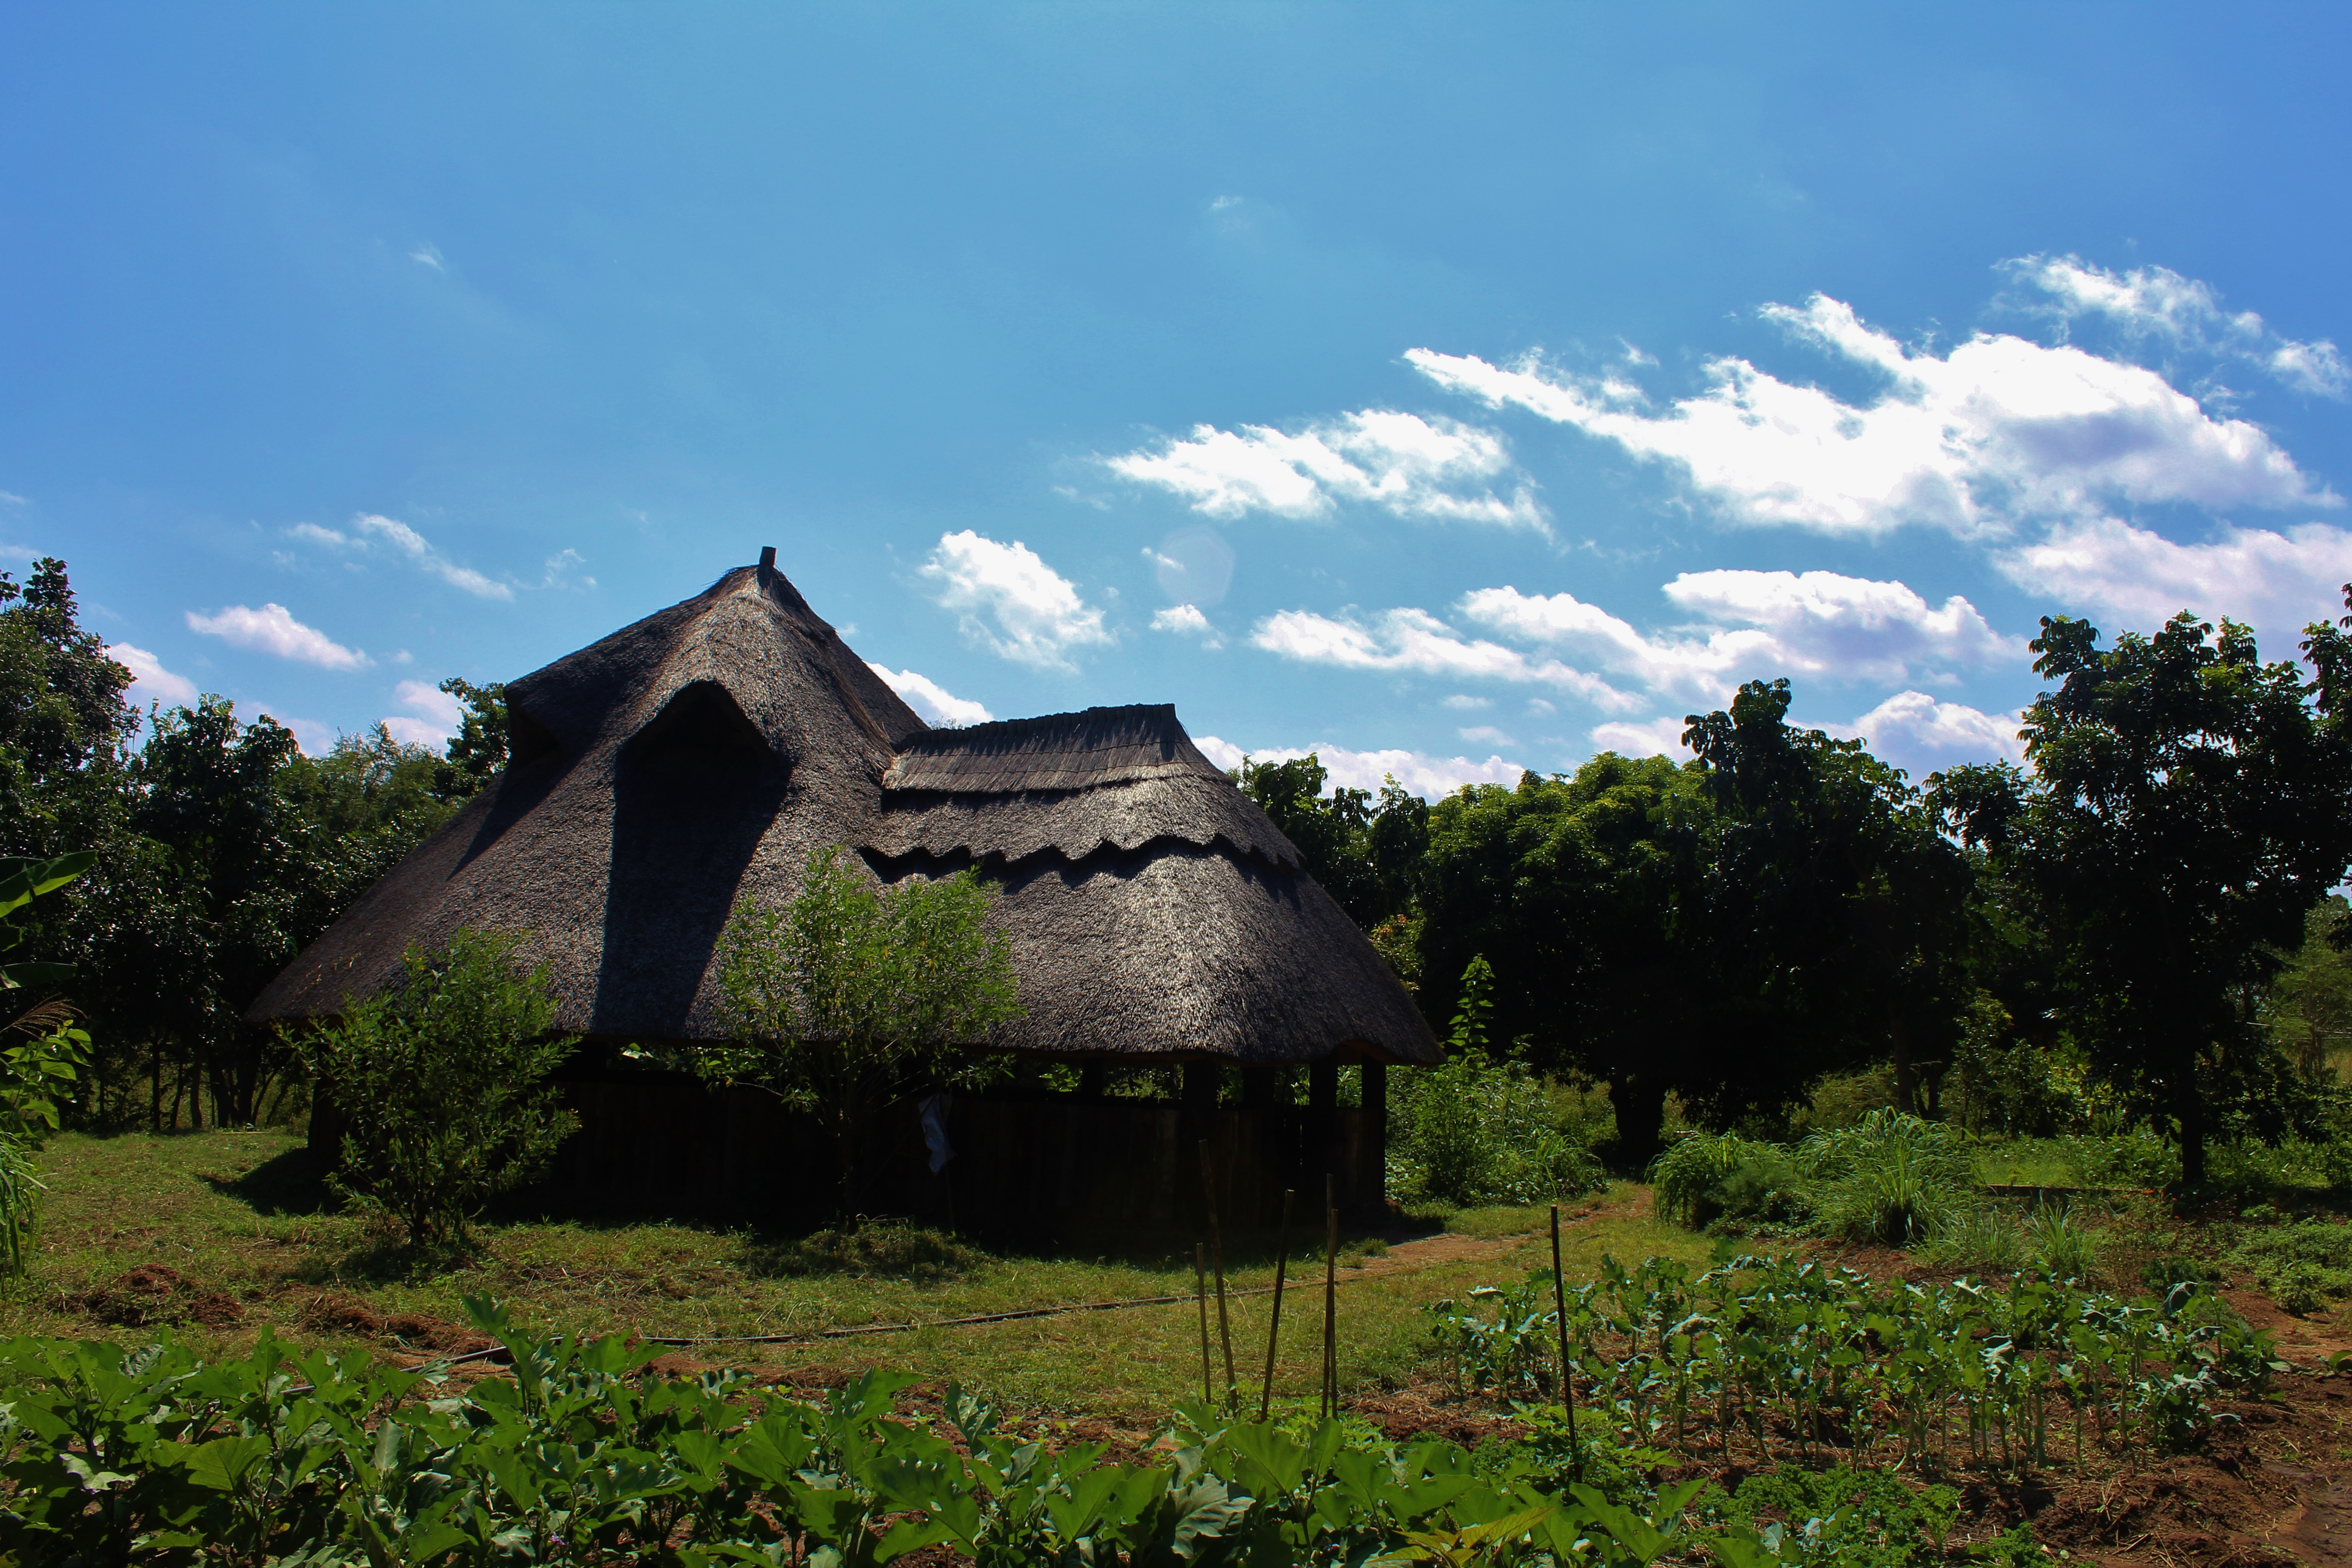 A permaculture farm near Kumbali village where my friend Kristie interned